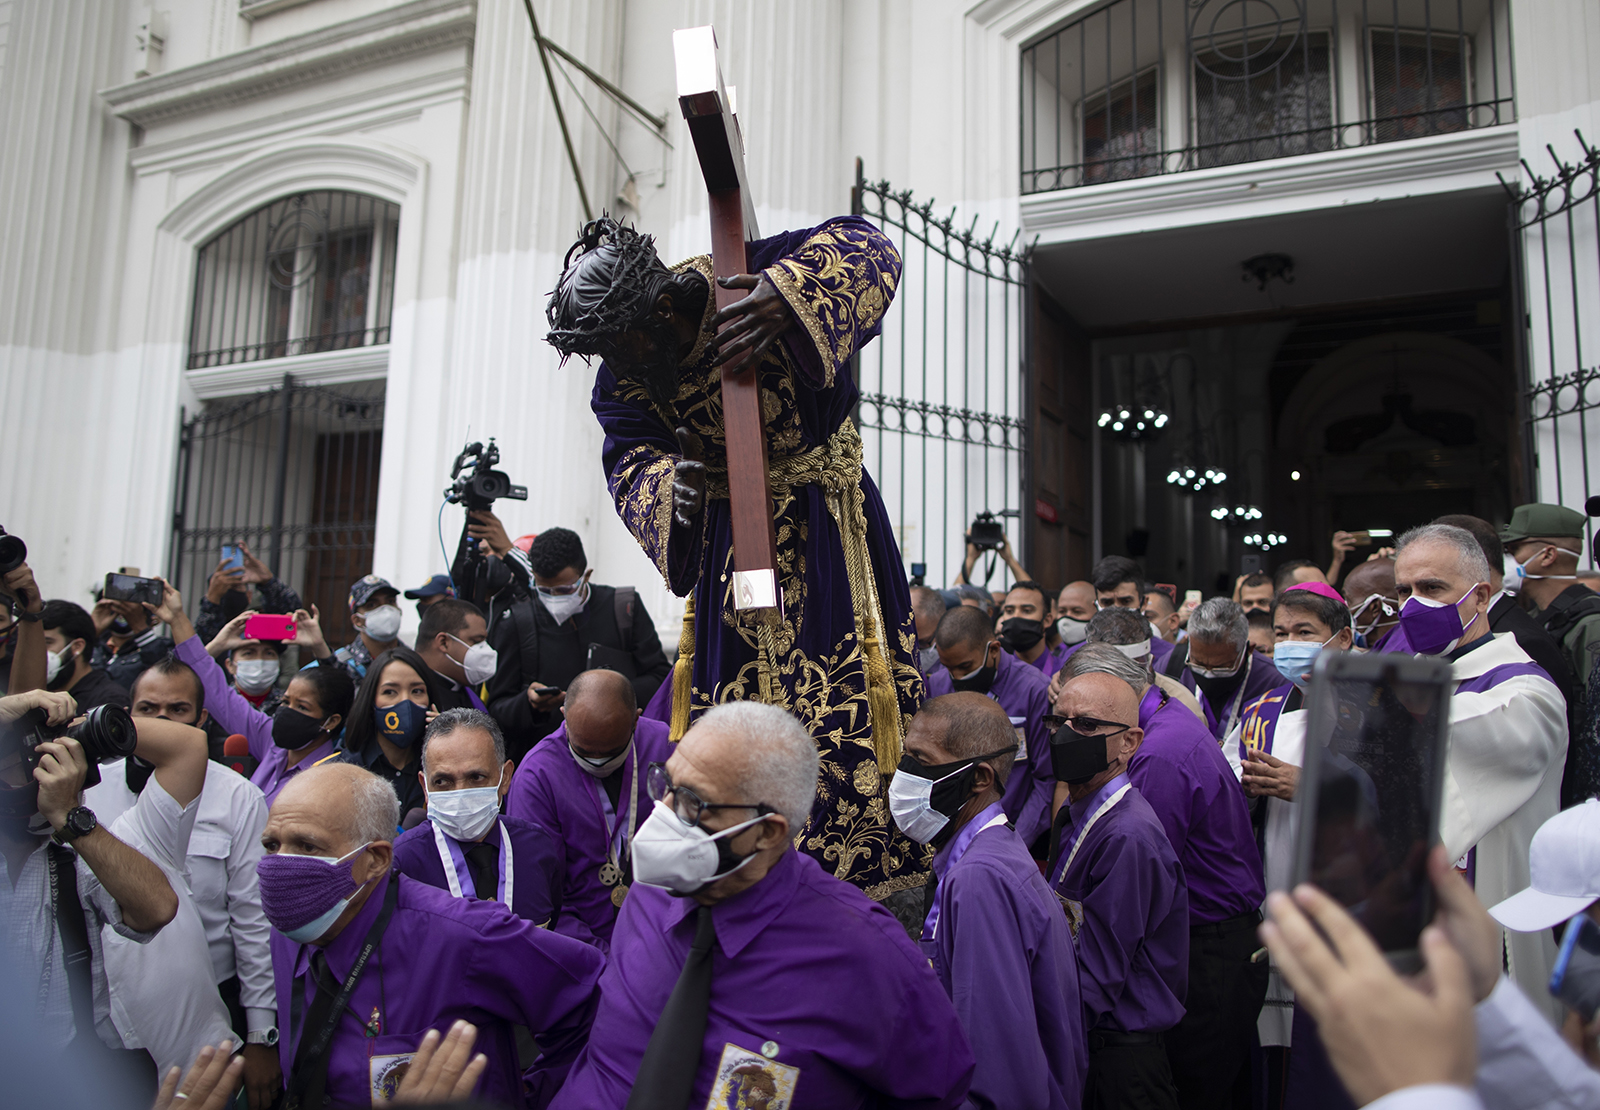 """Men carry the """"Nazareno de San Pablo"""" statue of Jesus from a church to a popemobile for it to be paraded through the neighborhood during Holy Week celebrations amid the COVID-19 pandemic in Caracas, Venezuela, Wednesday, March 31, 2021. The annual procession wasn't allowed for the second year in a row to help contain the spread of the new coronavirus. (AP Photo/Ariana Cubillos)"""